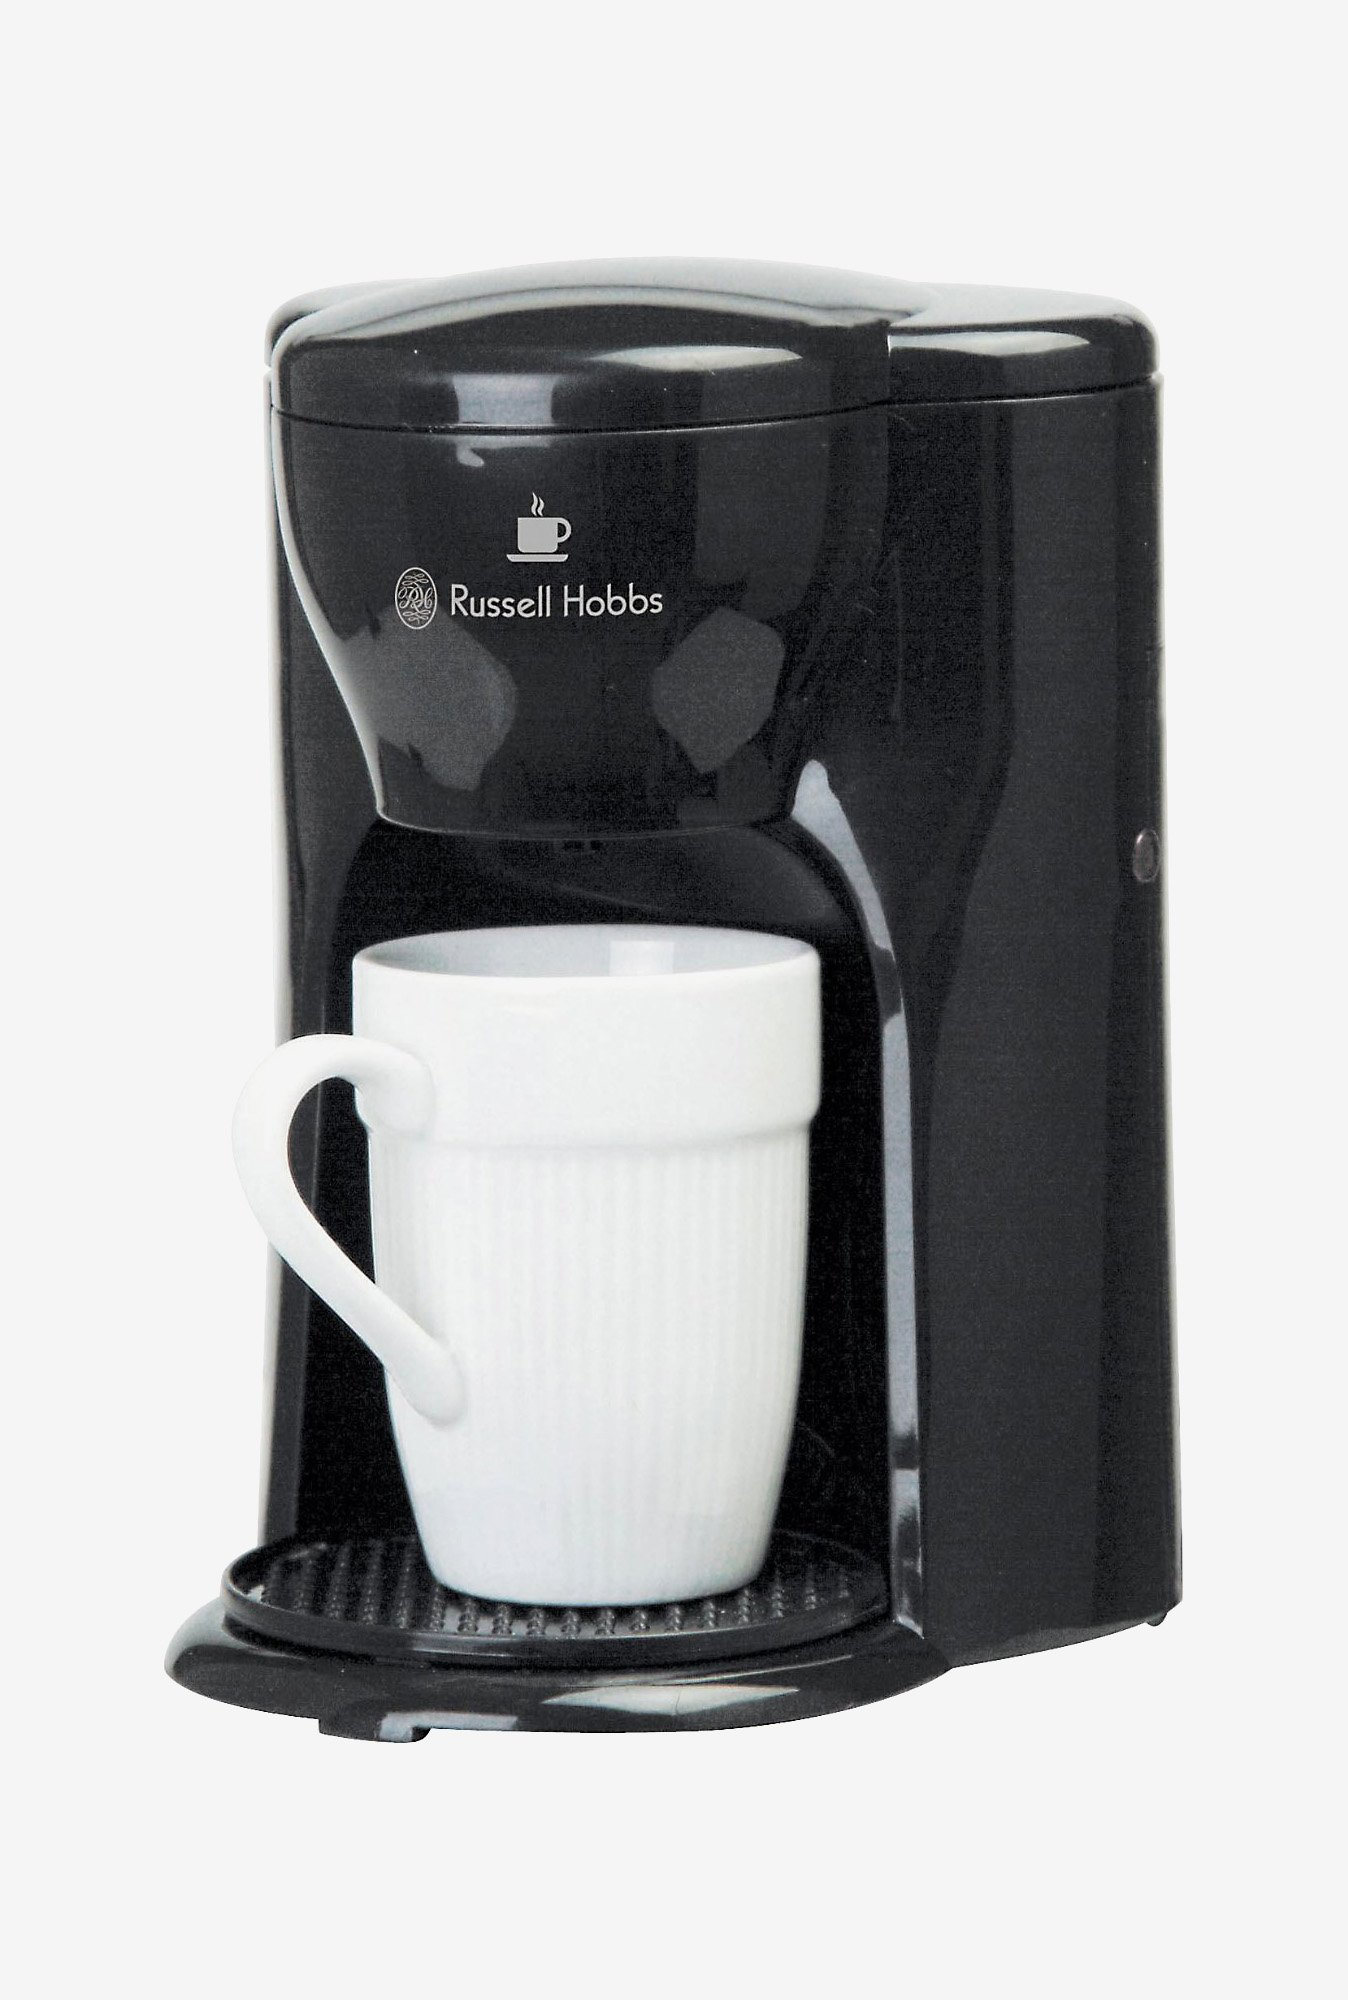 Russell Hobbs RCM1 Coffee Maker with 1 Cup Capacity (Black)